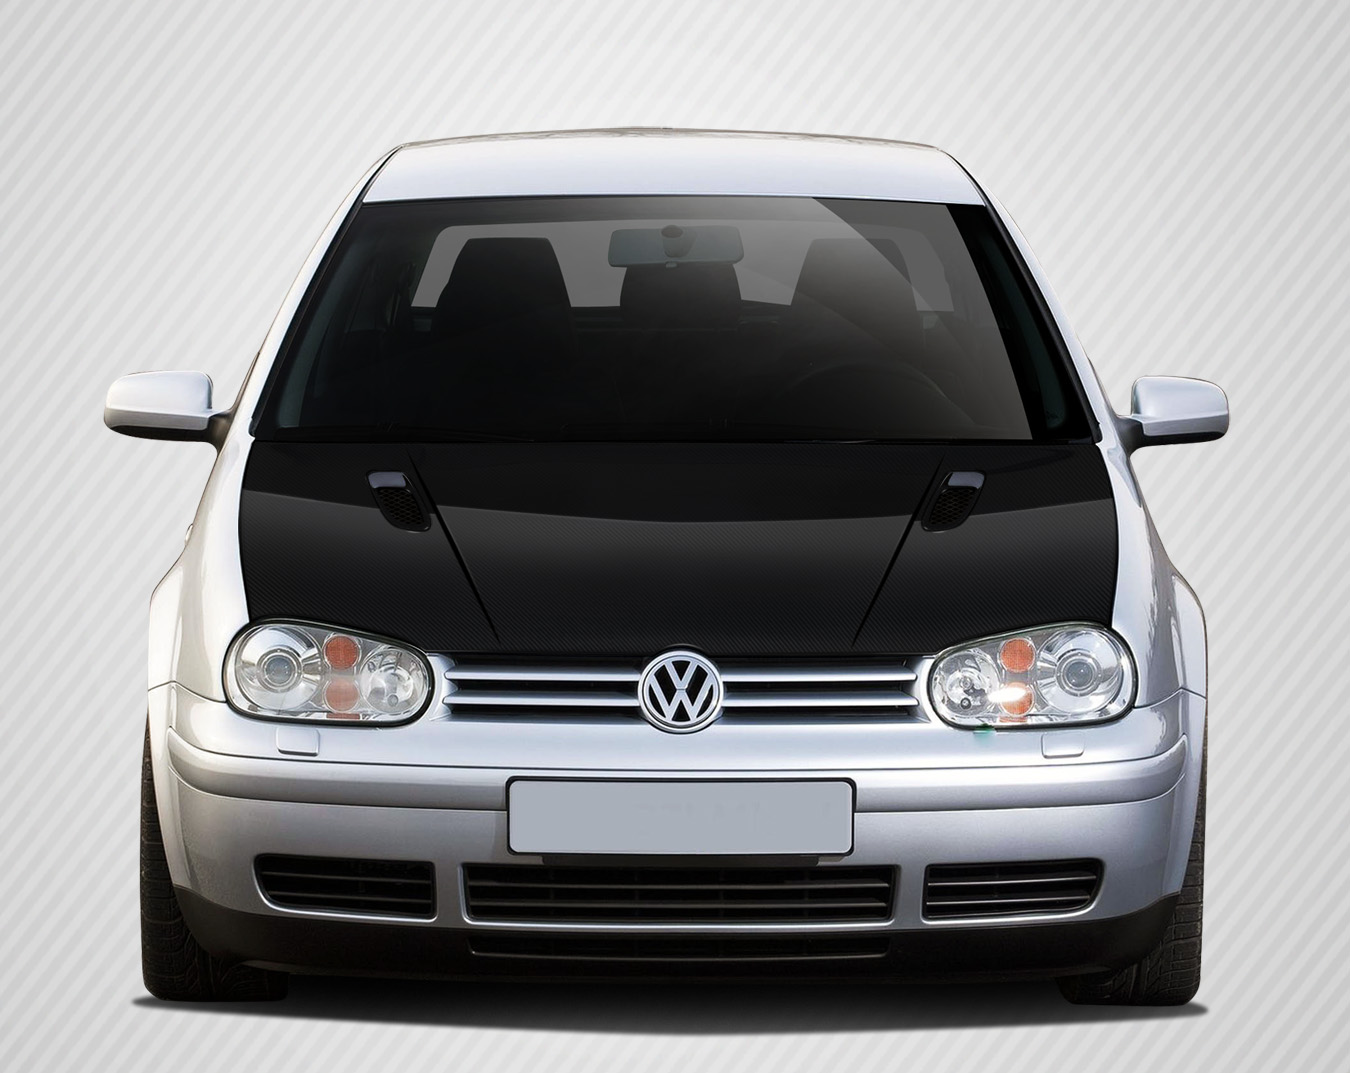 2002 volkswagen golf all hood bodykit volkswagen golf. Black Bedroom Furniture Sets. Home Design Ideas